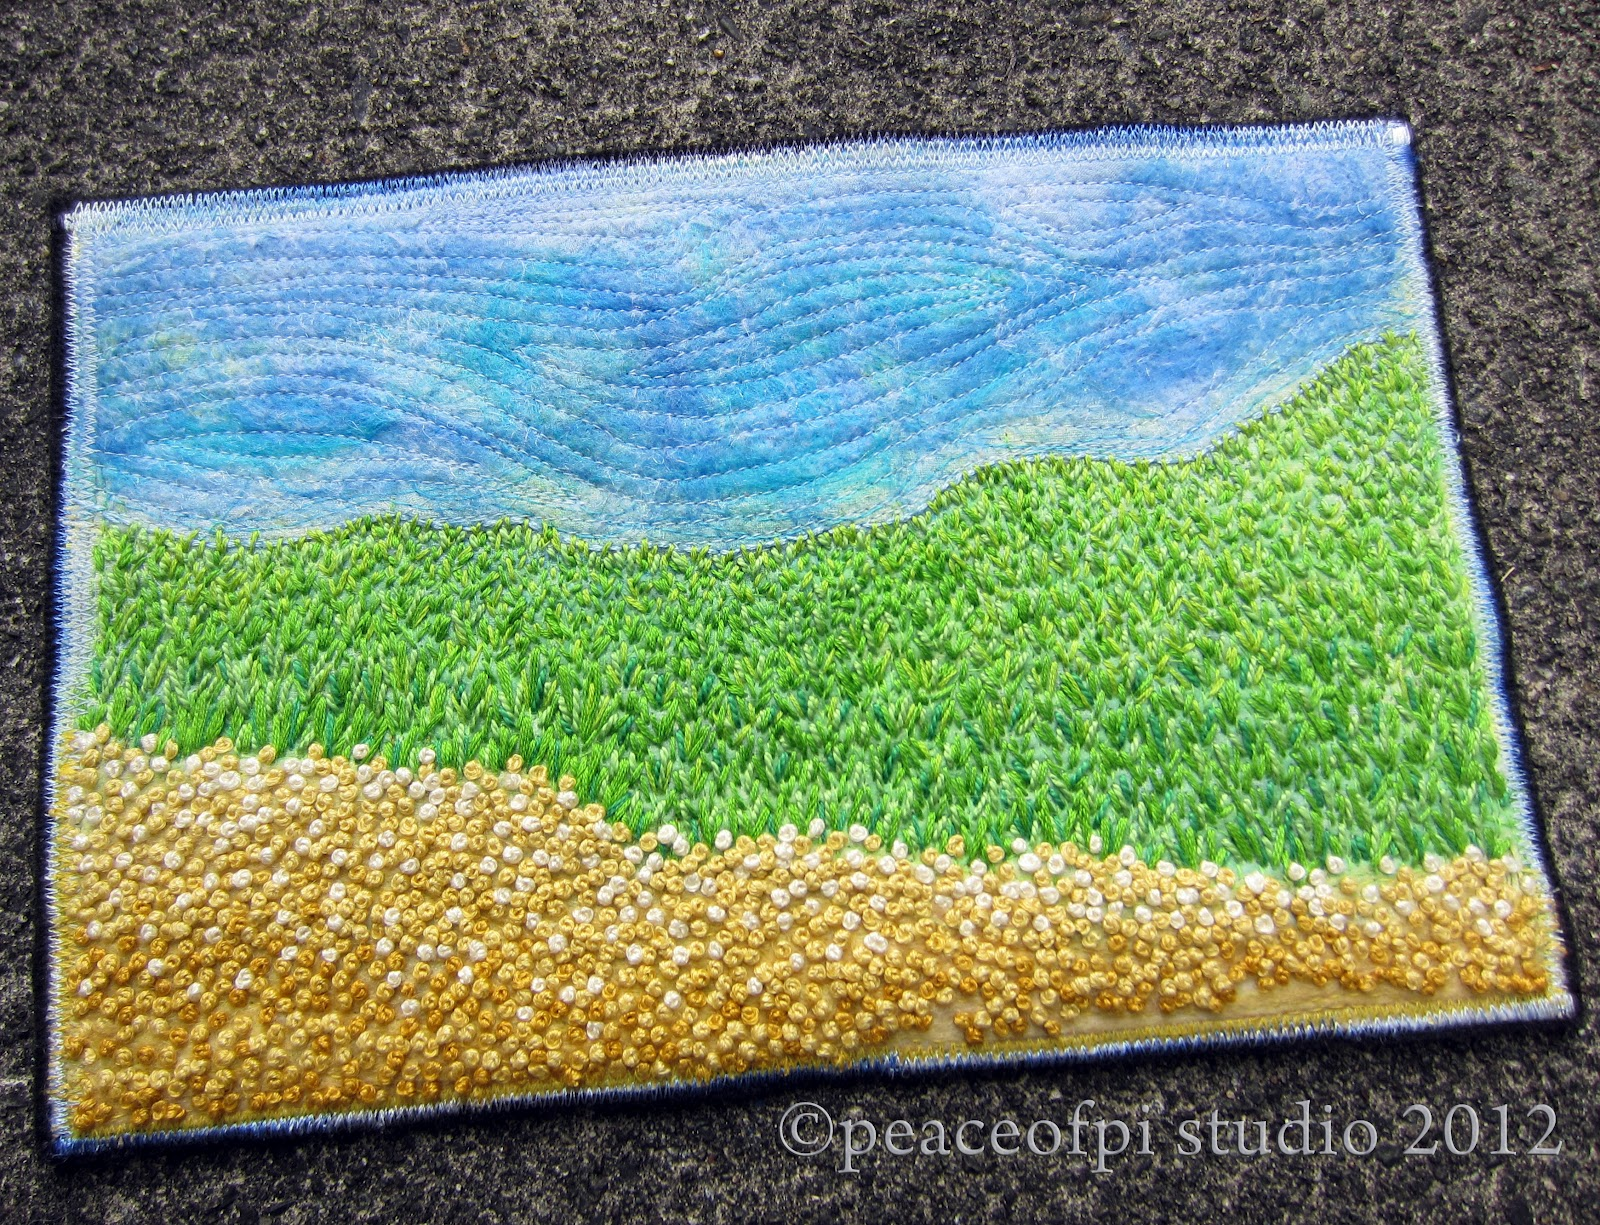 Peaceofpi studio landscape in hand embroidery